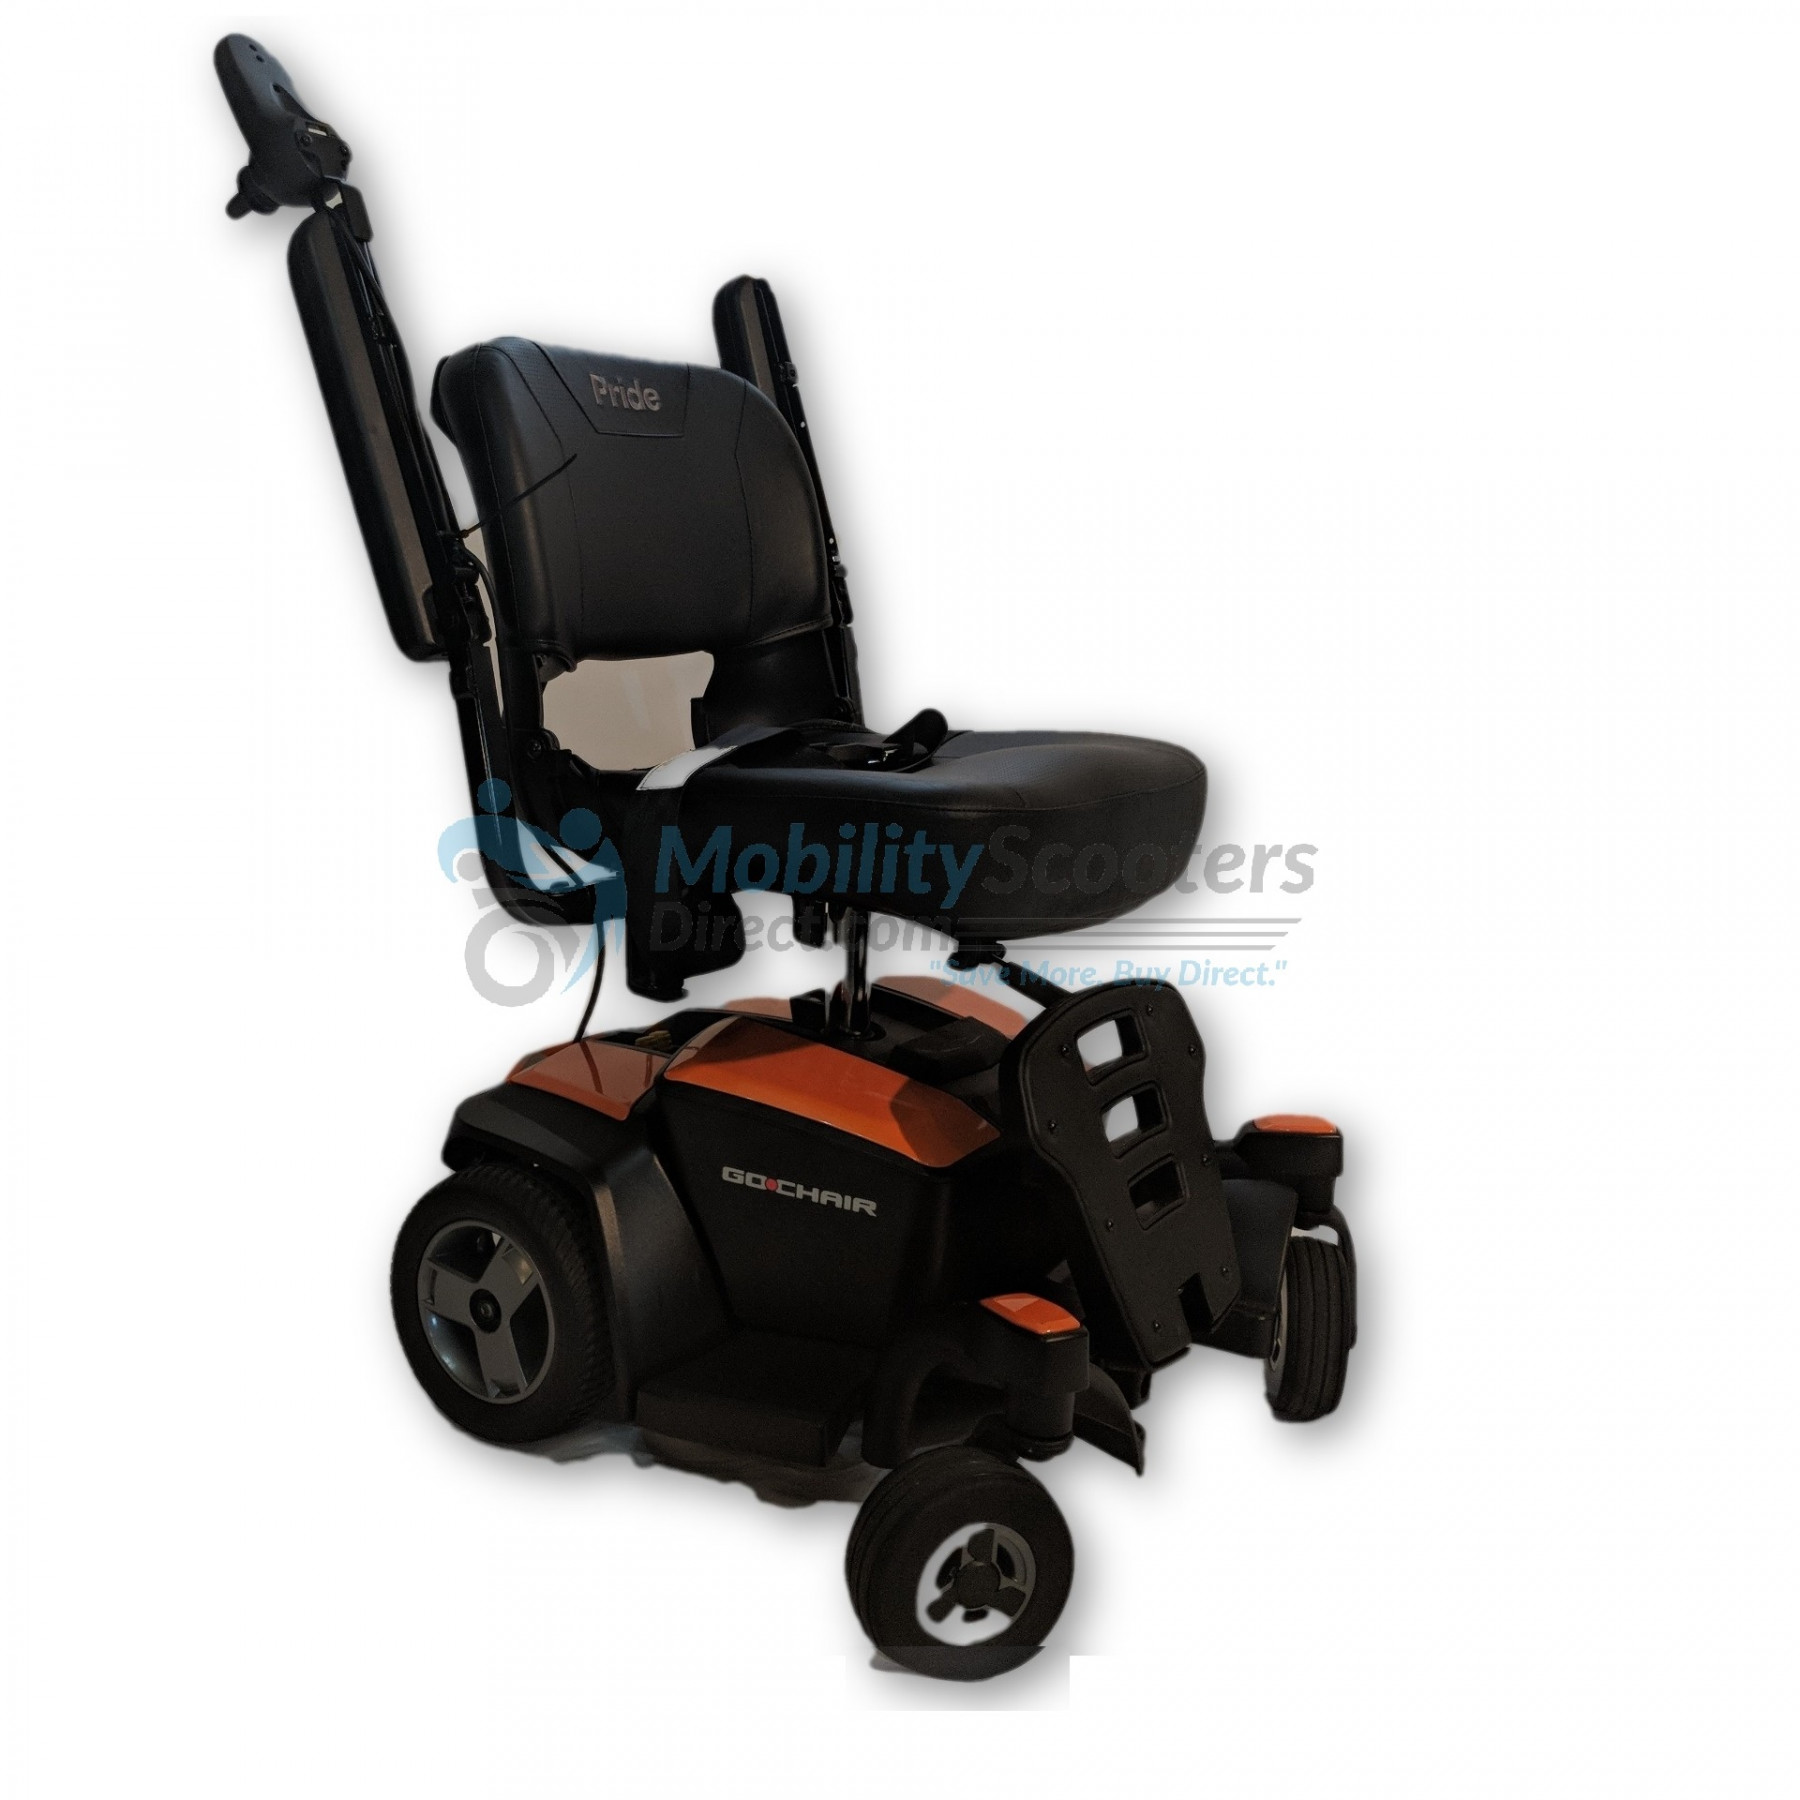 power chair accessories bags office gif go wheelchair for sale lowest prices tax